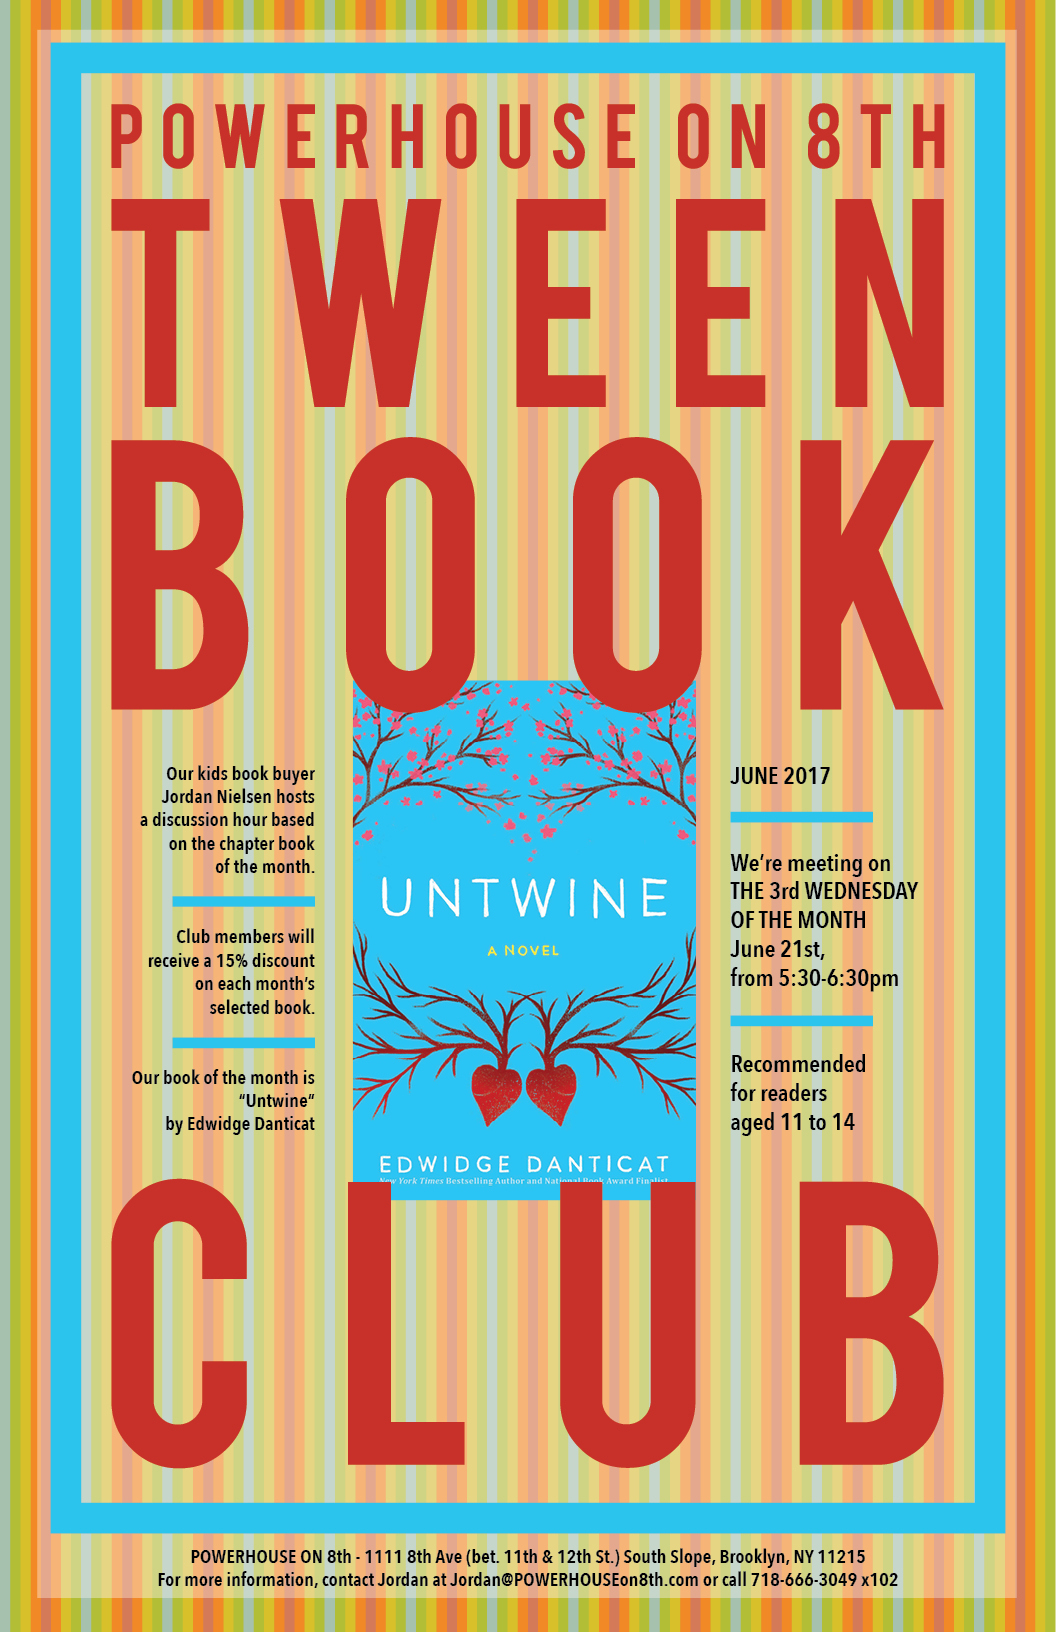 Tween Book Club: Untwine by Edwidge Danticat